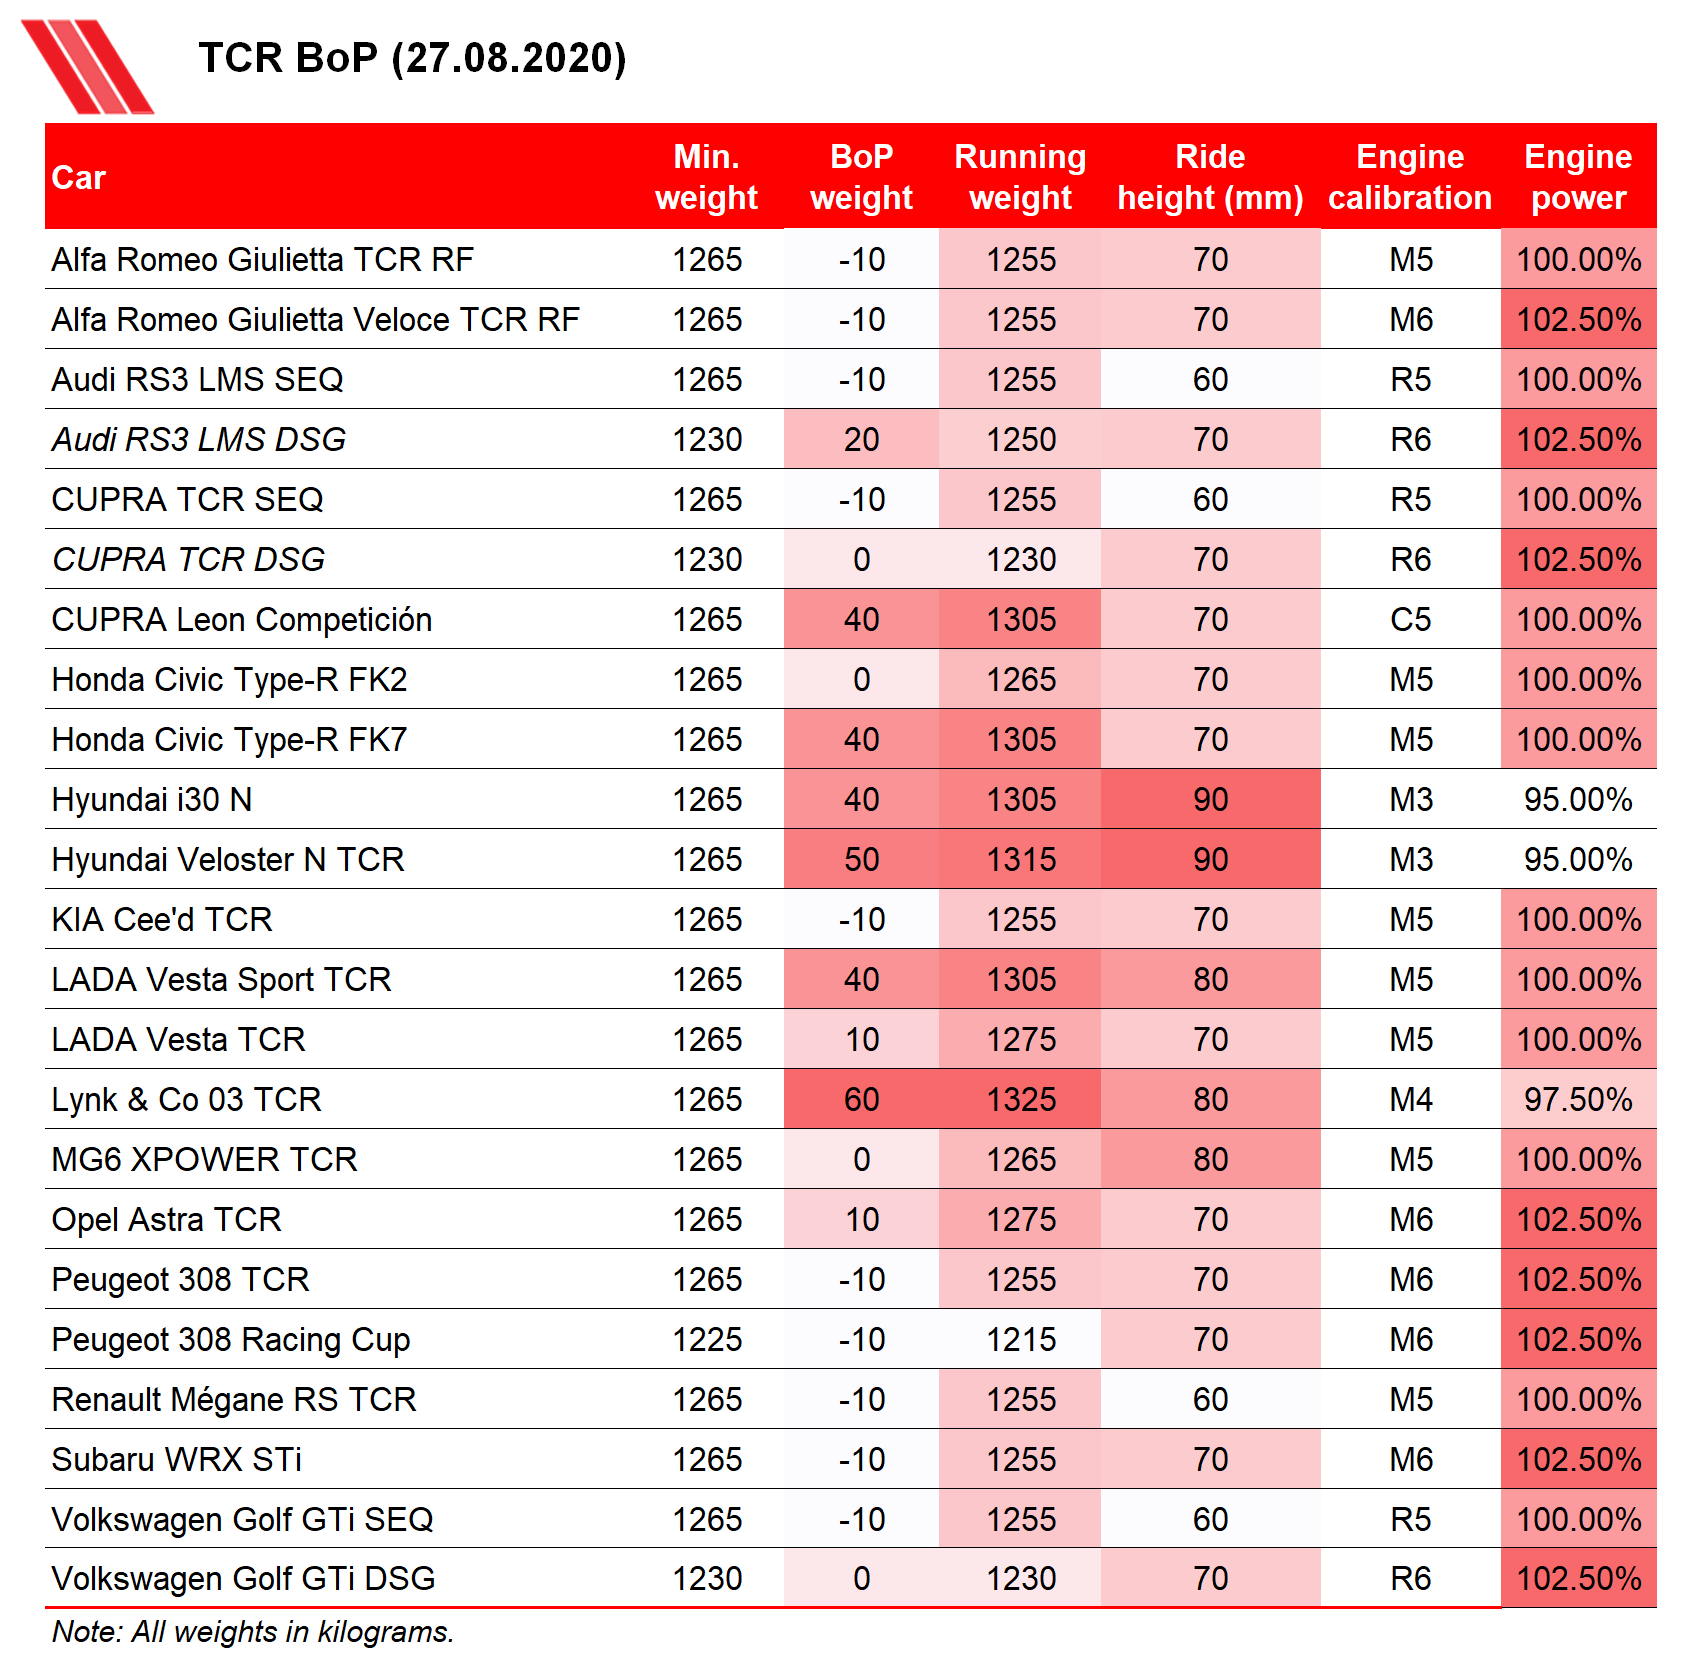 TCR Balance of Performance 27 August 2020